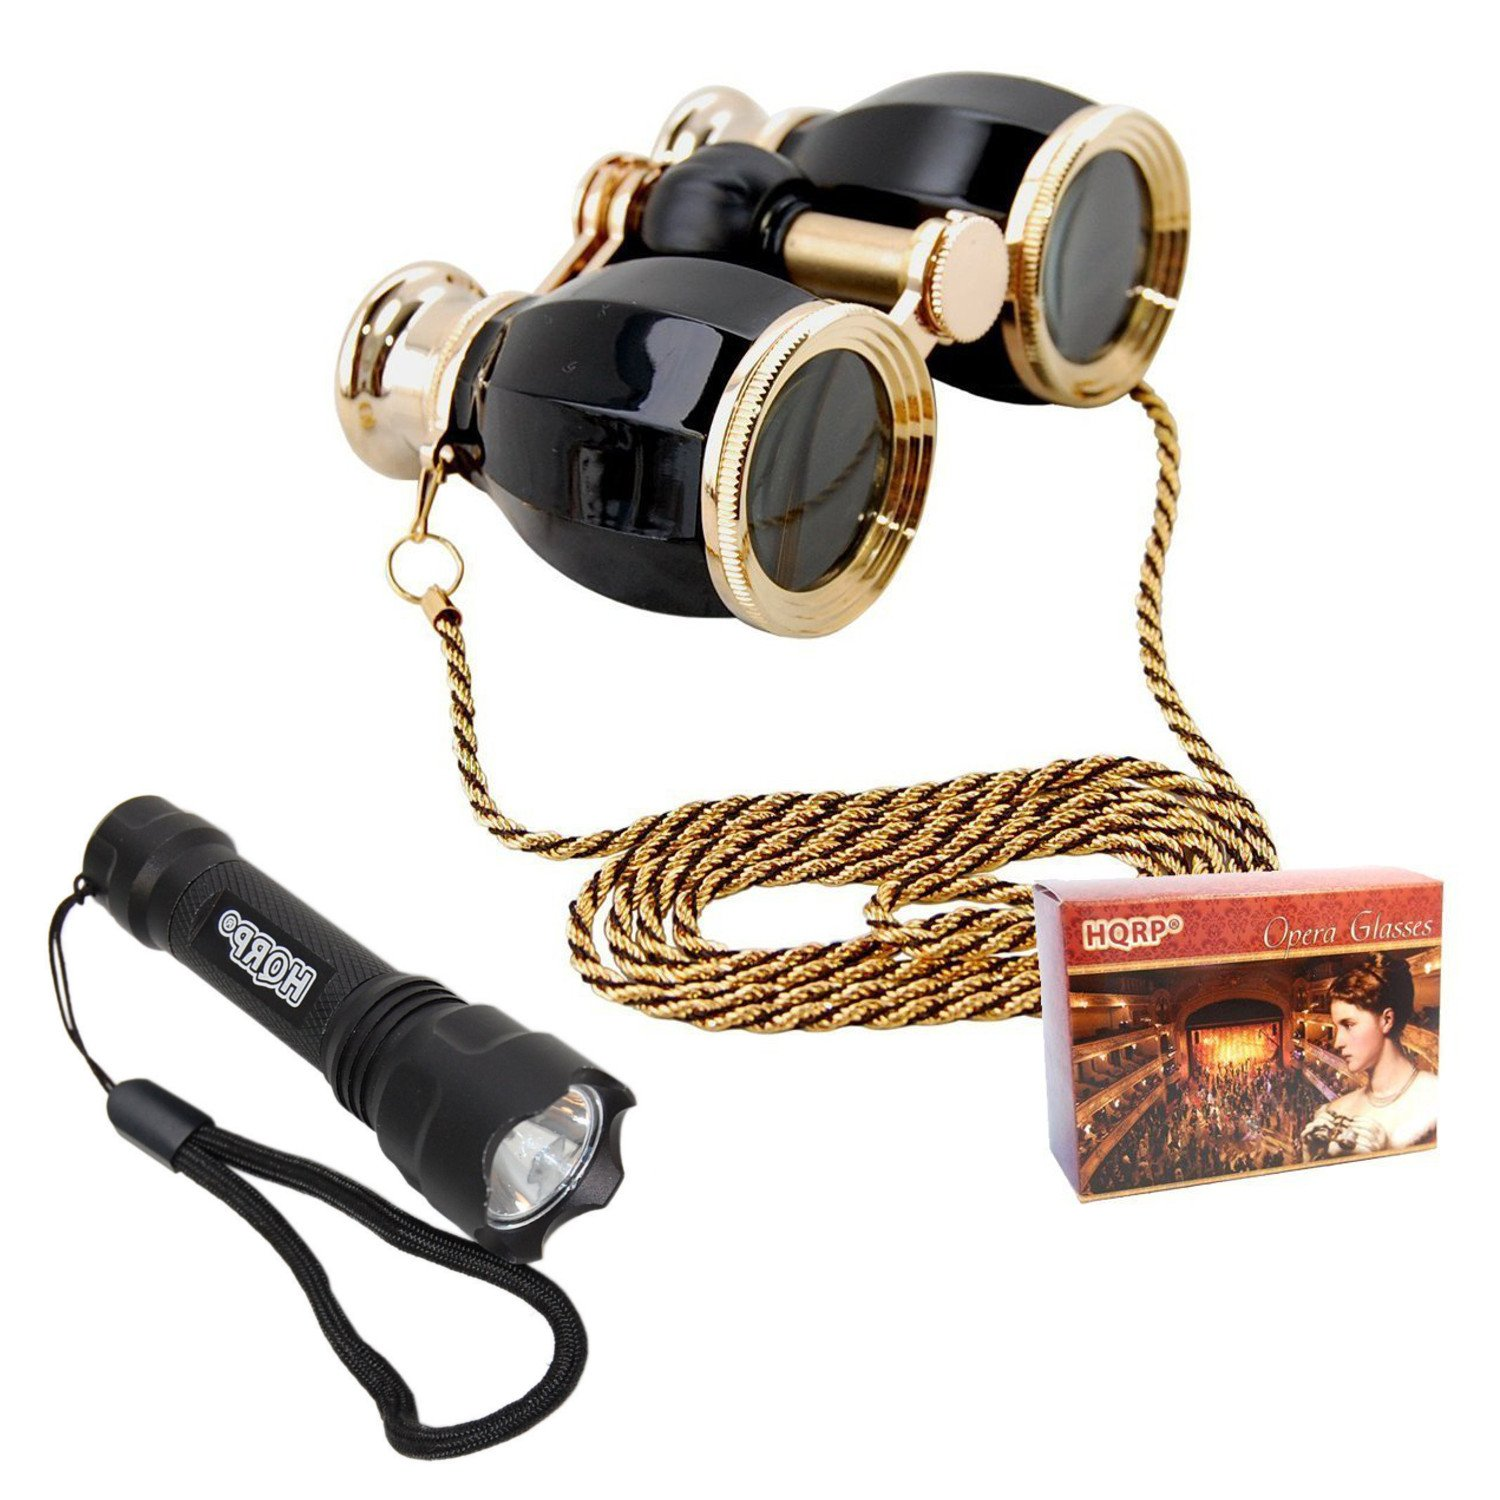 HQRP Theatre Kit: 4 x 30 Black pearl Opera Glasses Binocular Antique Style with Gold Trim & Necklace Chain + Compact Ultra Bright Flashlight 884667801201701